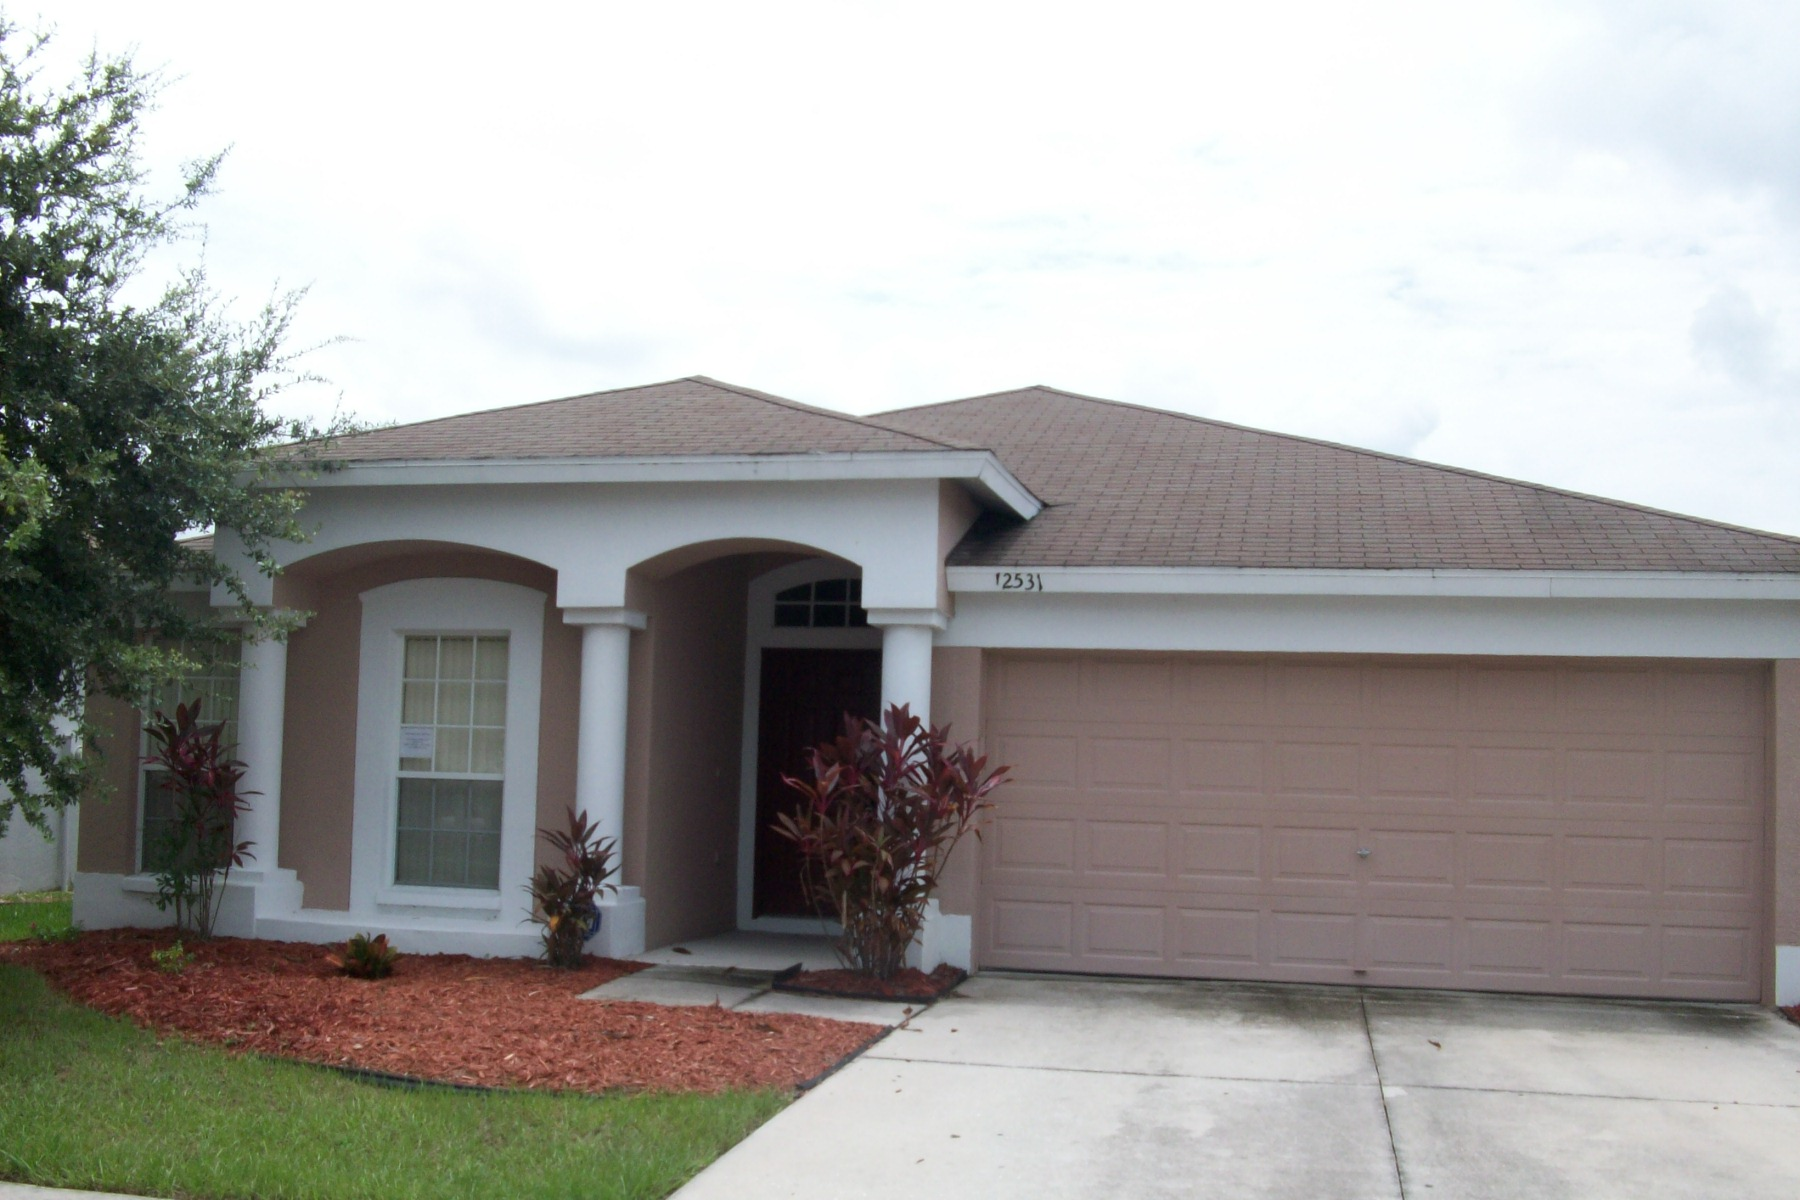 I buy houses Gainesville Florida. Sell home fast cash online.